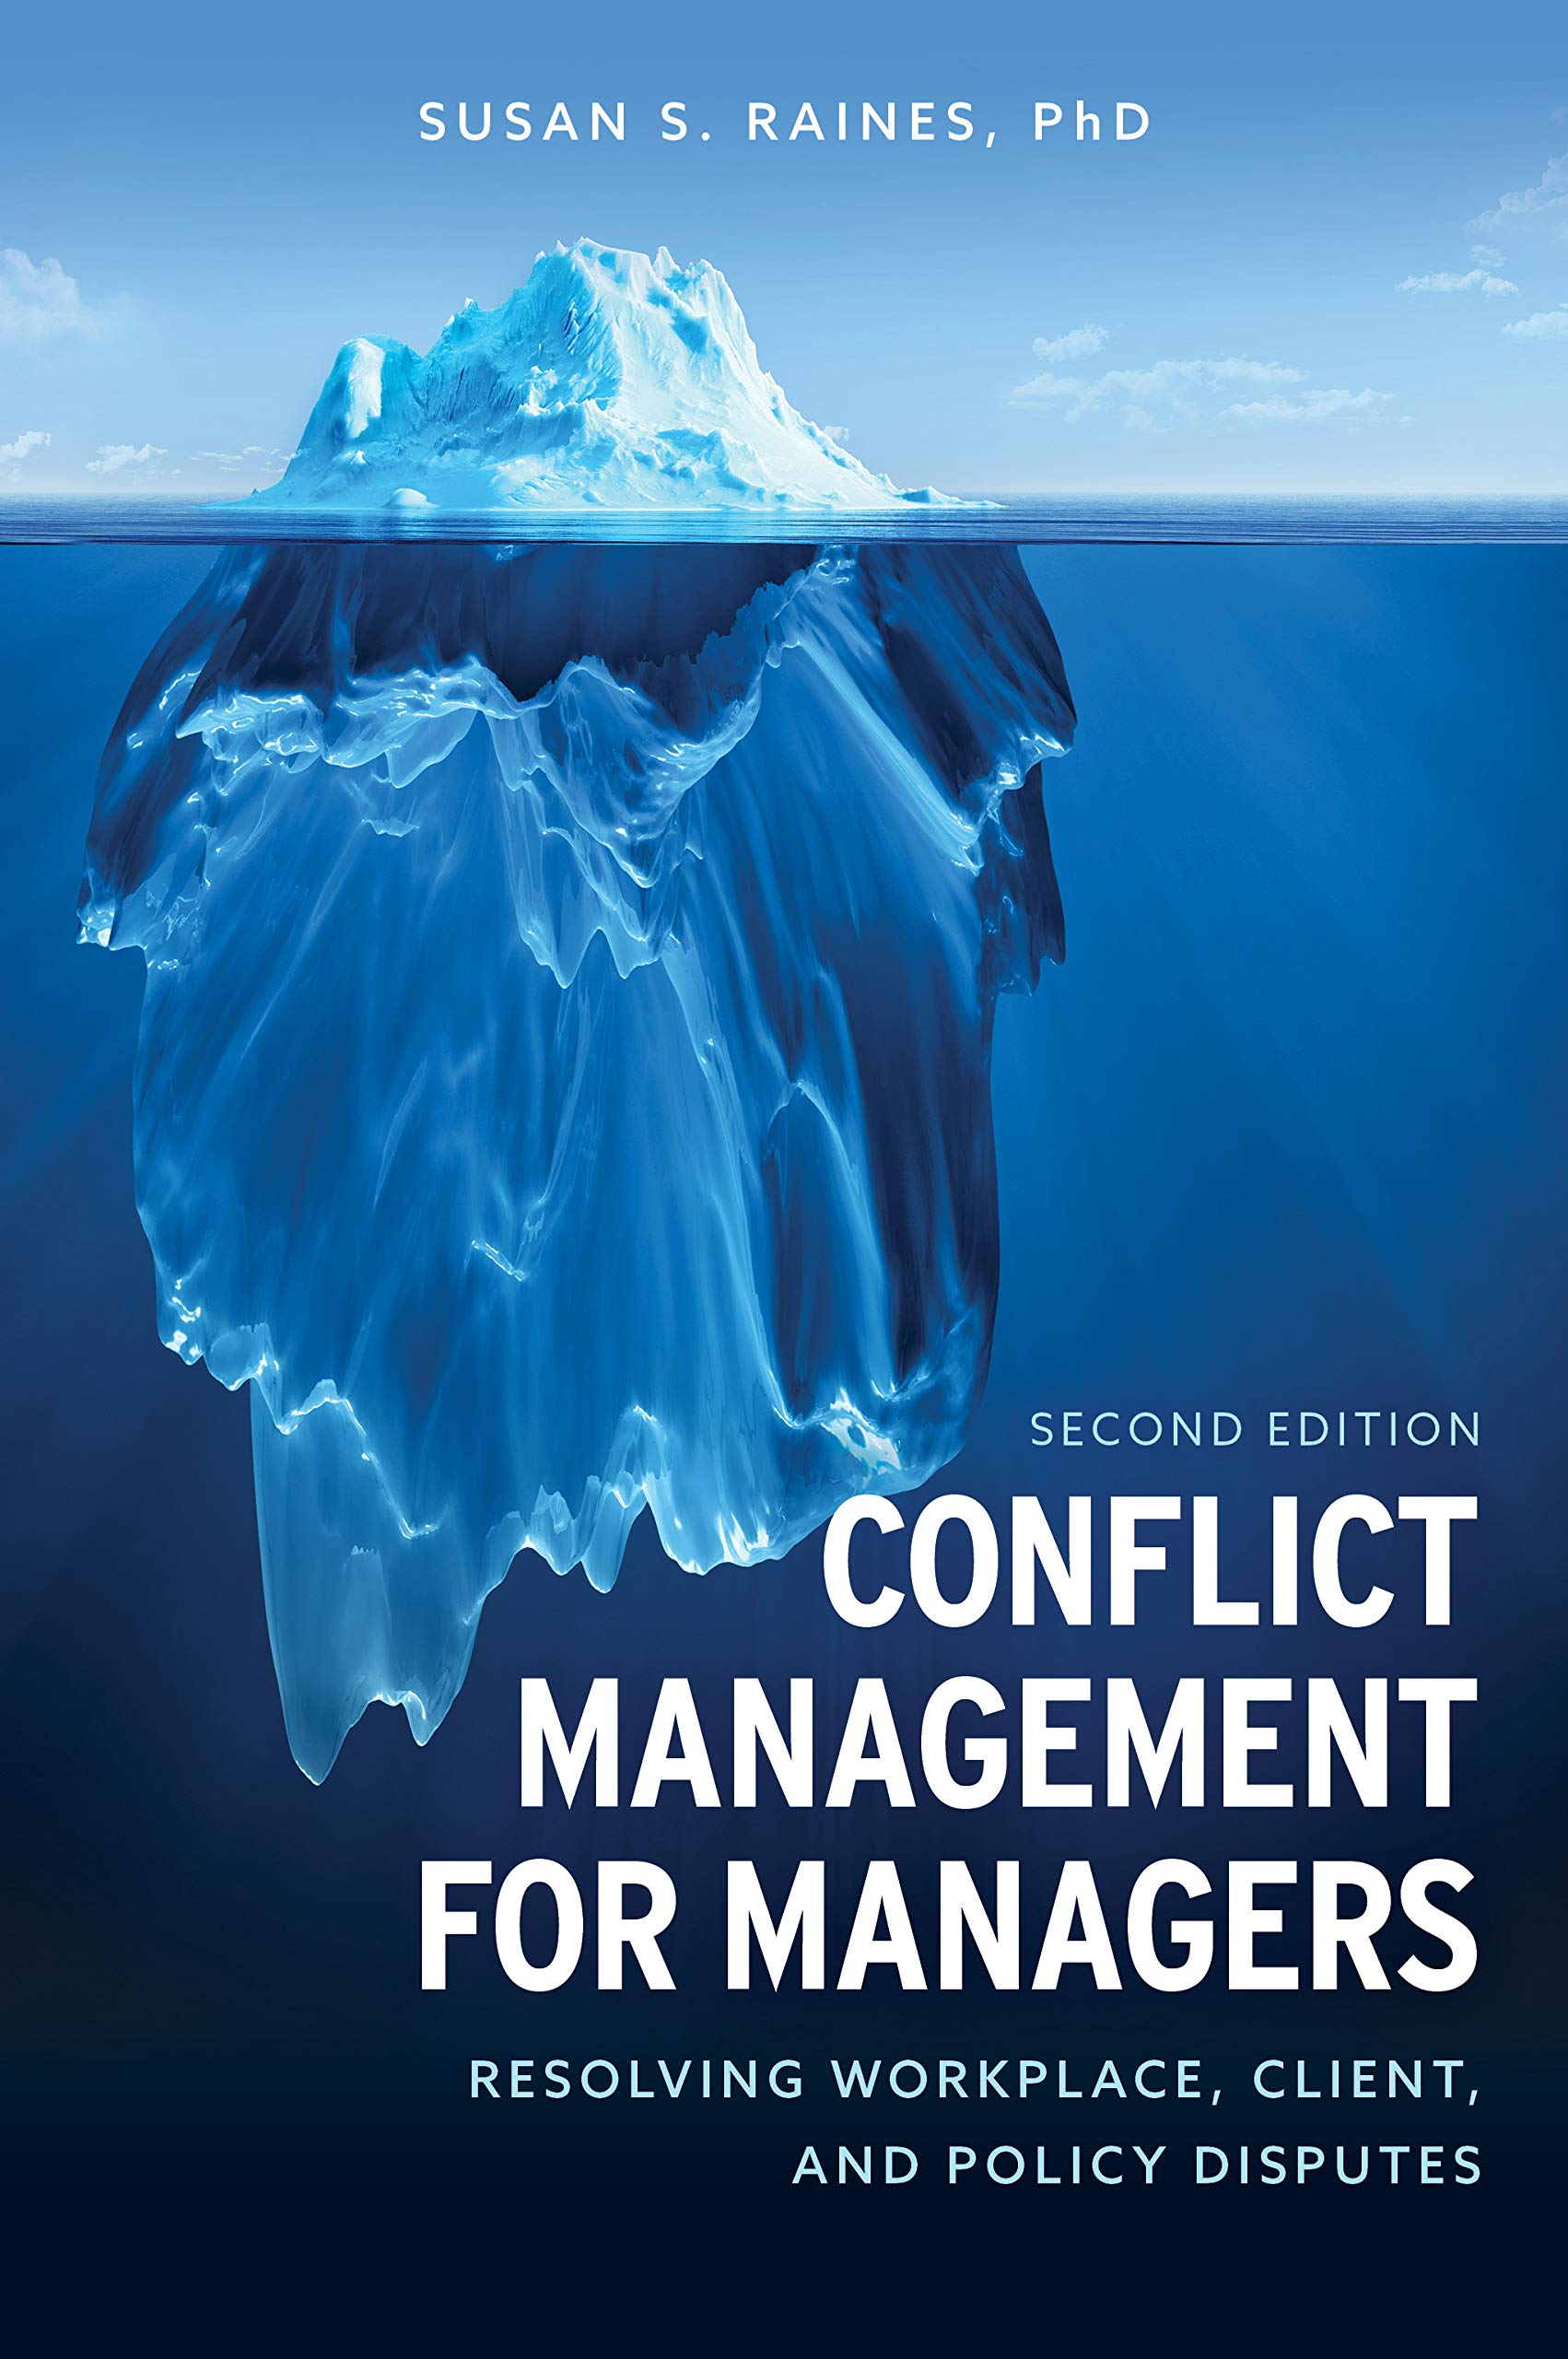 Conflict Management for Managers: Resolving Workplace, Client, and Policy Disputes by Rowman & Littlefield Publishers